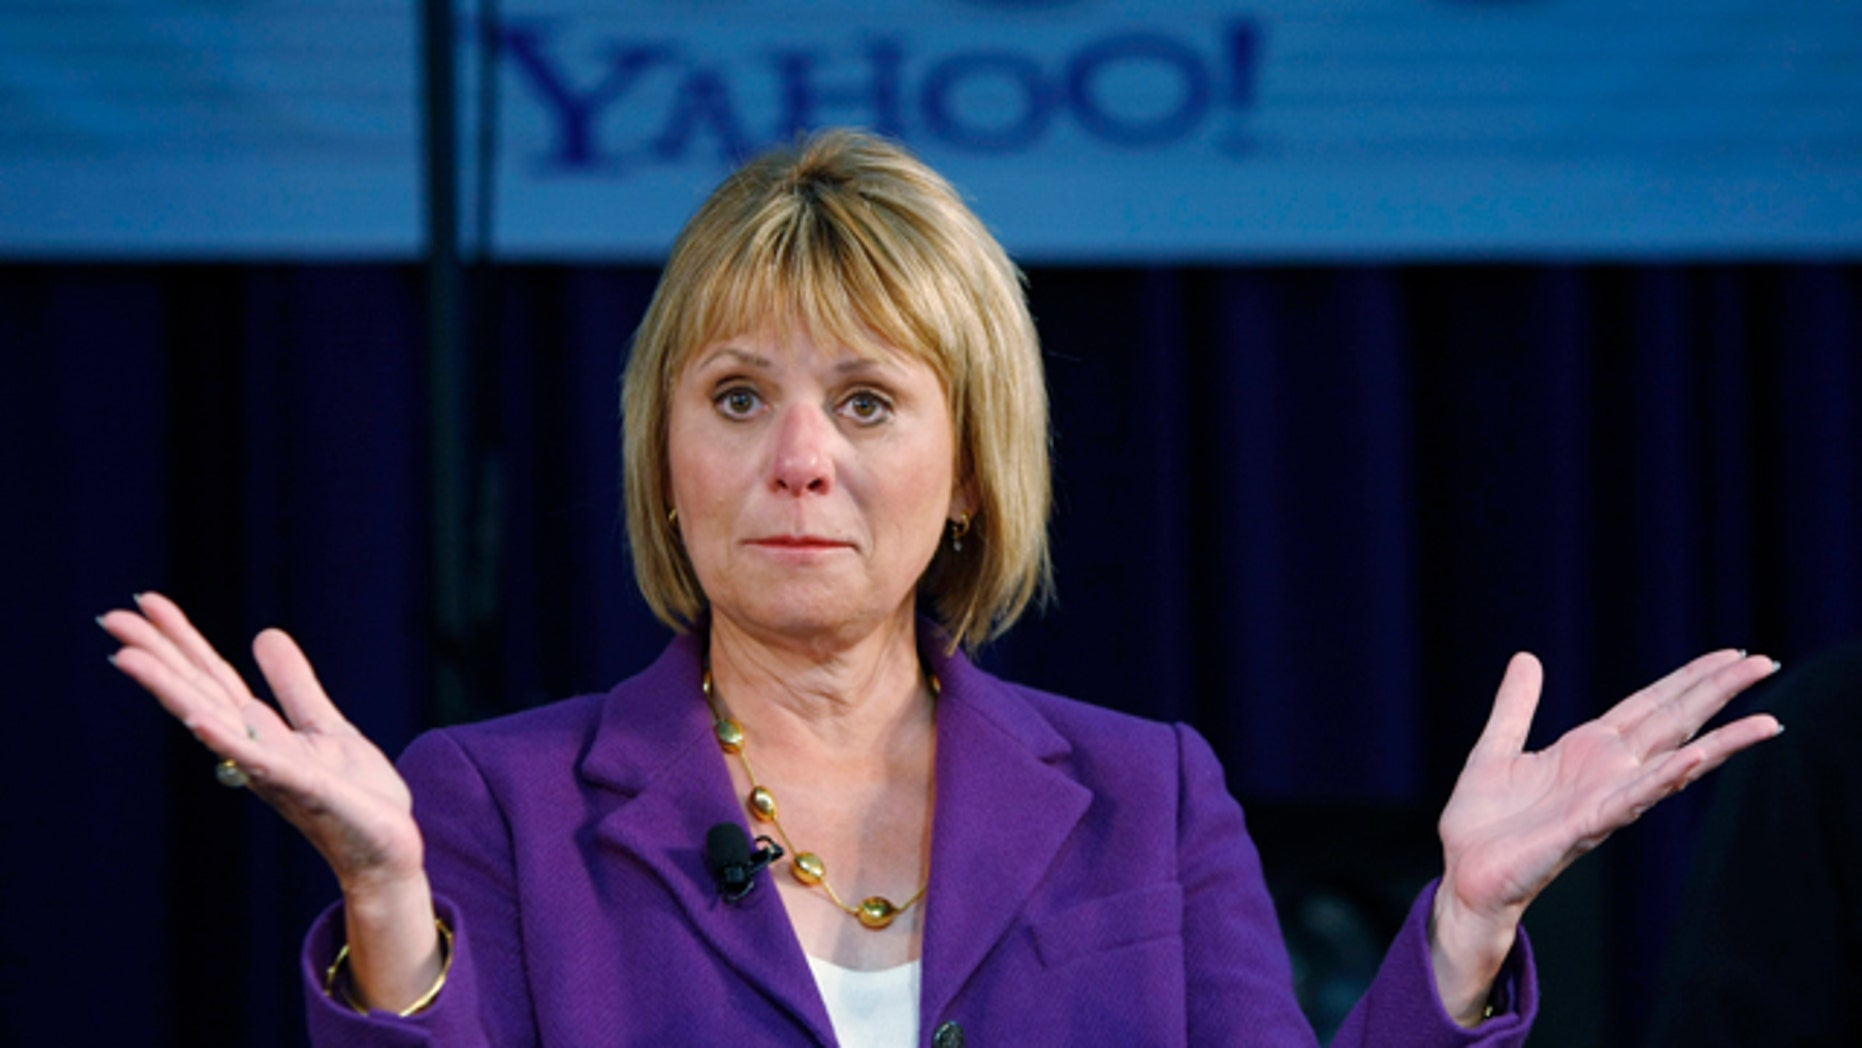 March 2, 2010: Yahoo CEO Carol Bartz gestures at Yahoo headquarters in Sunnyvale, Calif. Bartz was fired from Yahoo Monday after two and a half years as CEO.